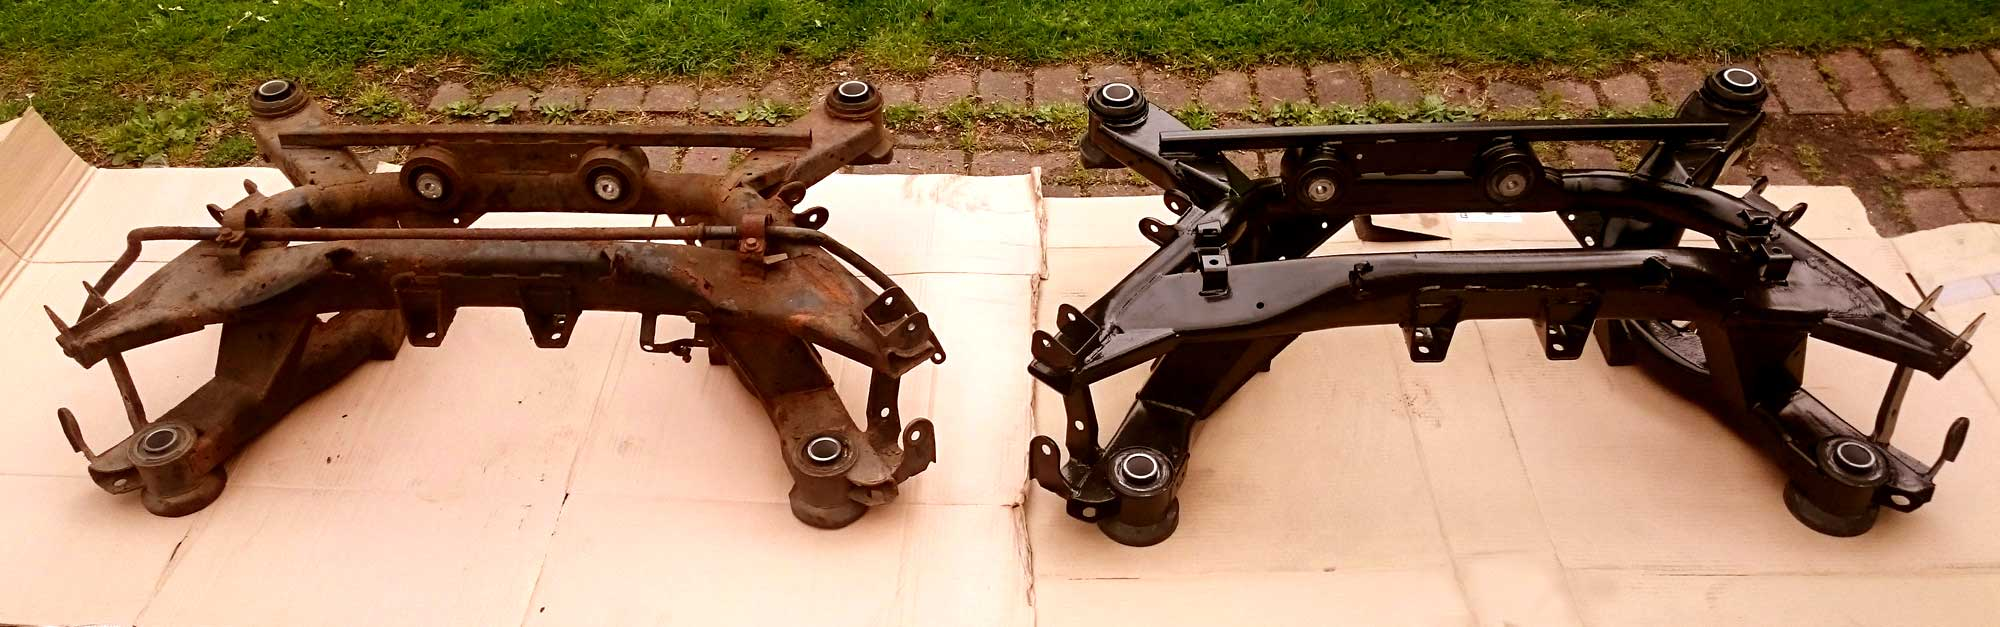 Old and New Subframes Aston Martin chassis subframes